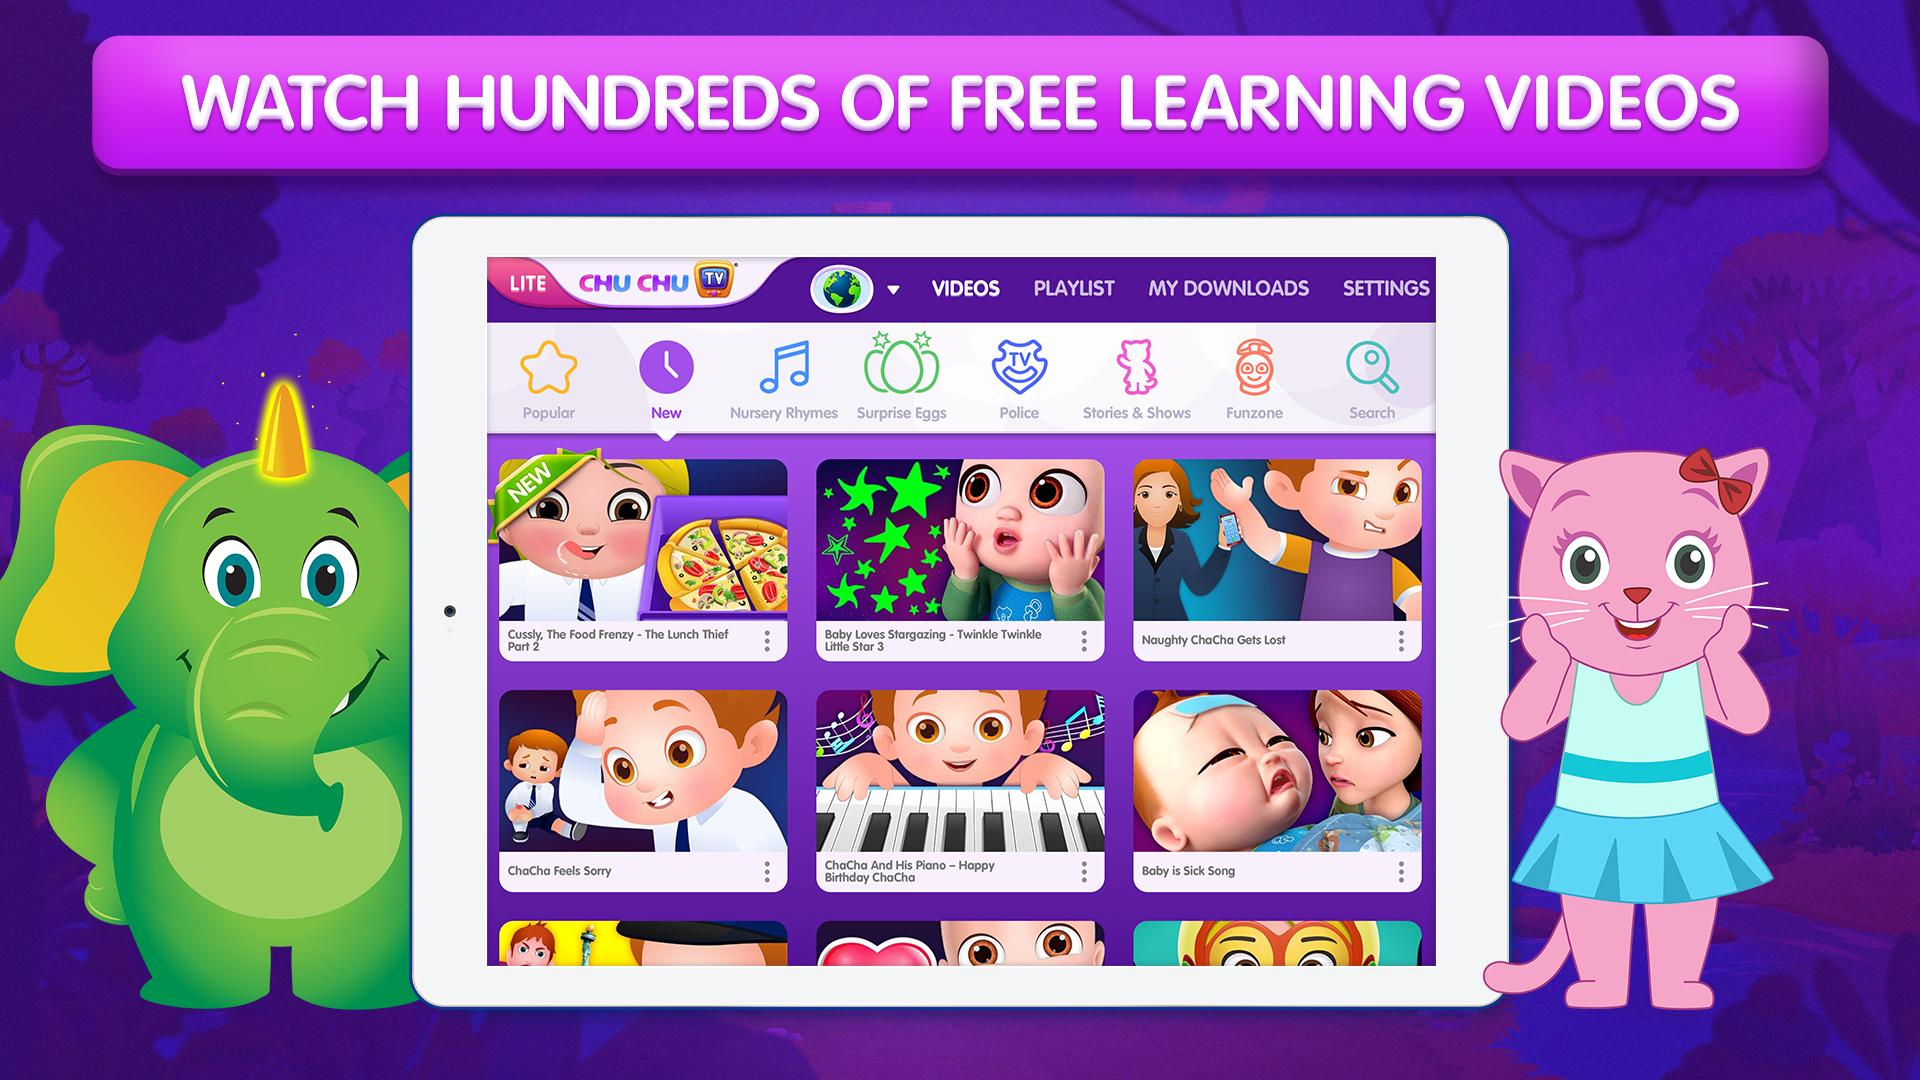 ChuChu TV LITE Best Nursery Rhymes Videos For Kids for